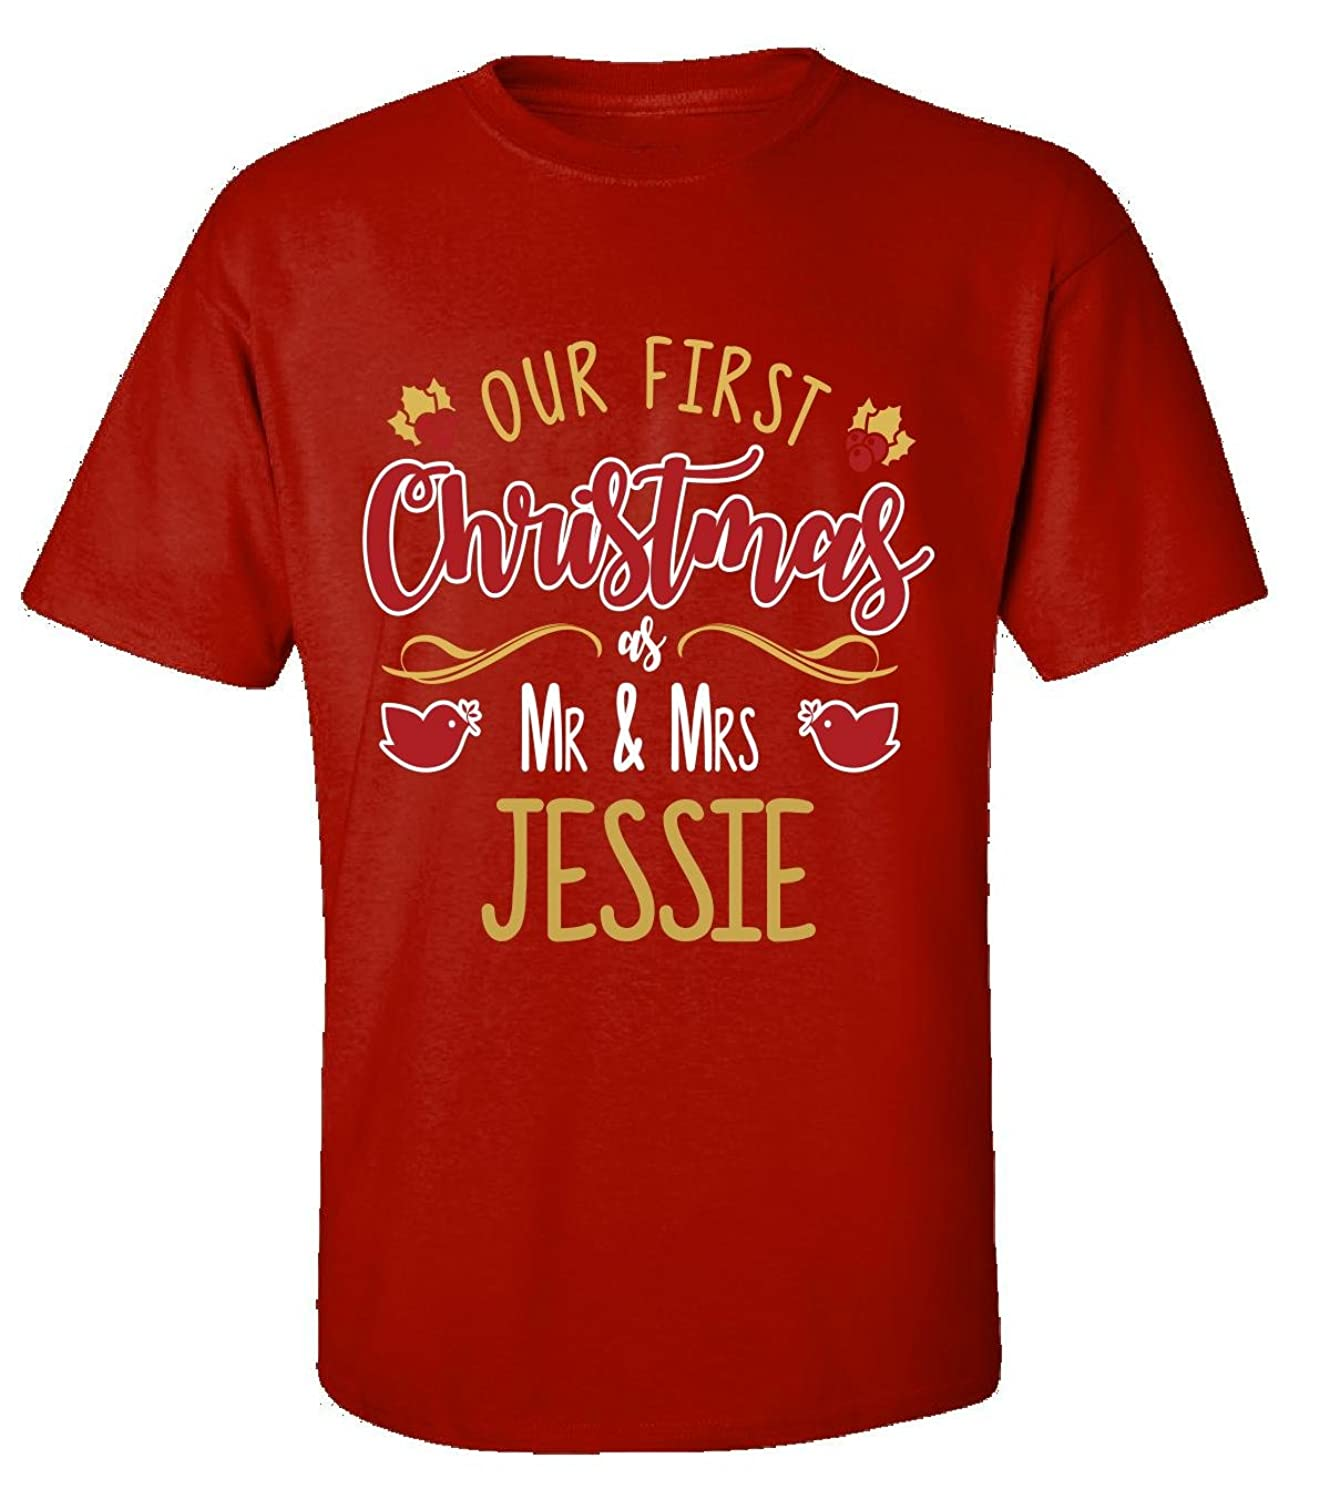 Our First Christmas As Mr & Mrs Jessie - Adult Shirt